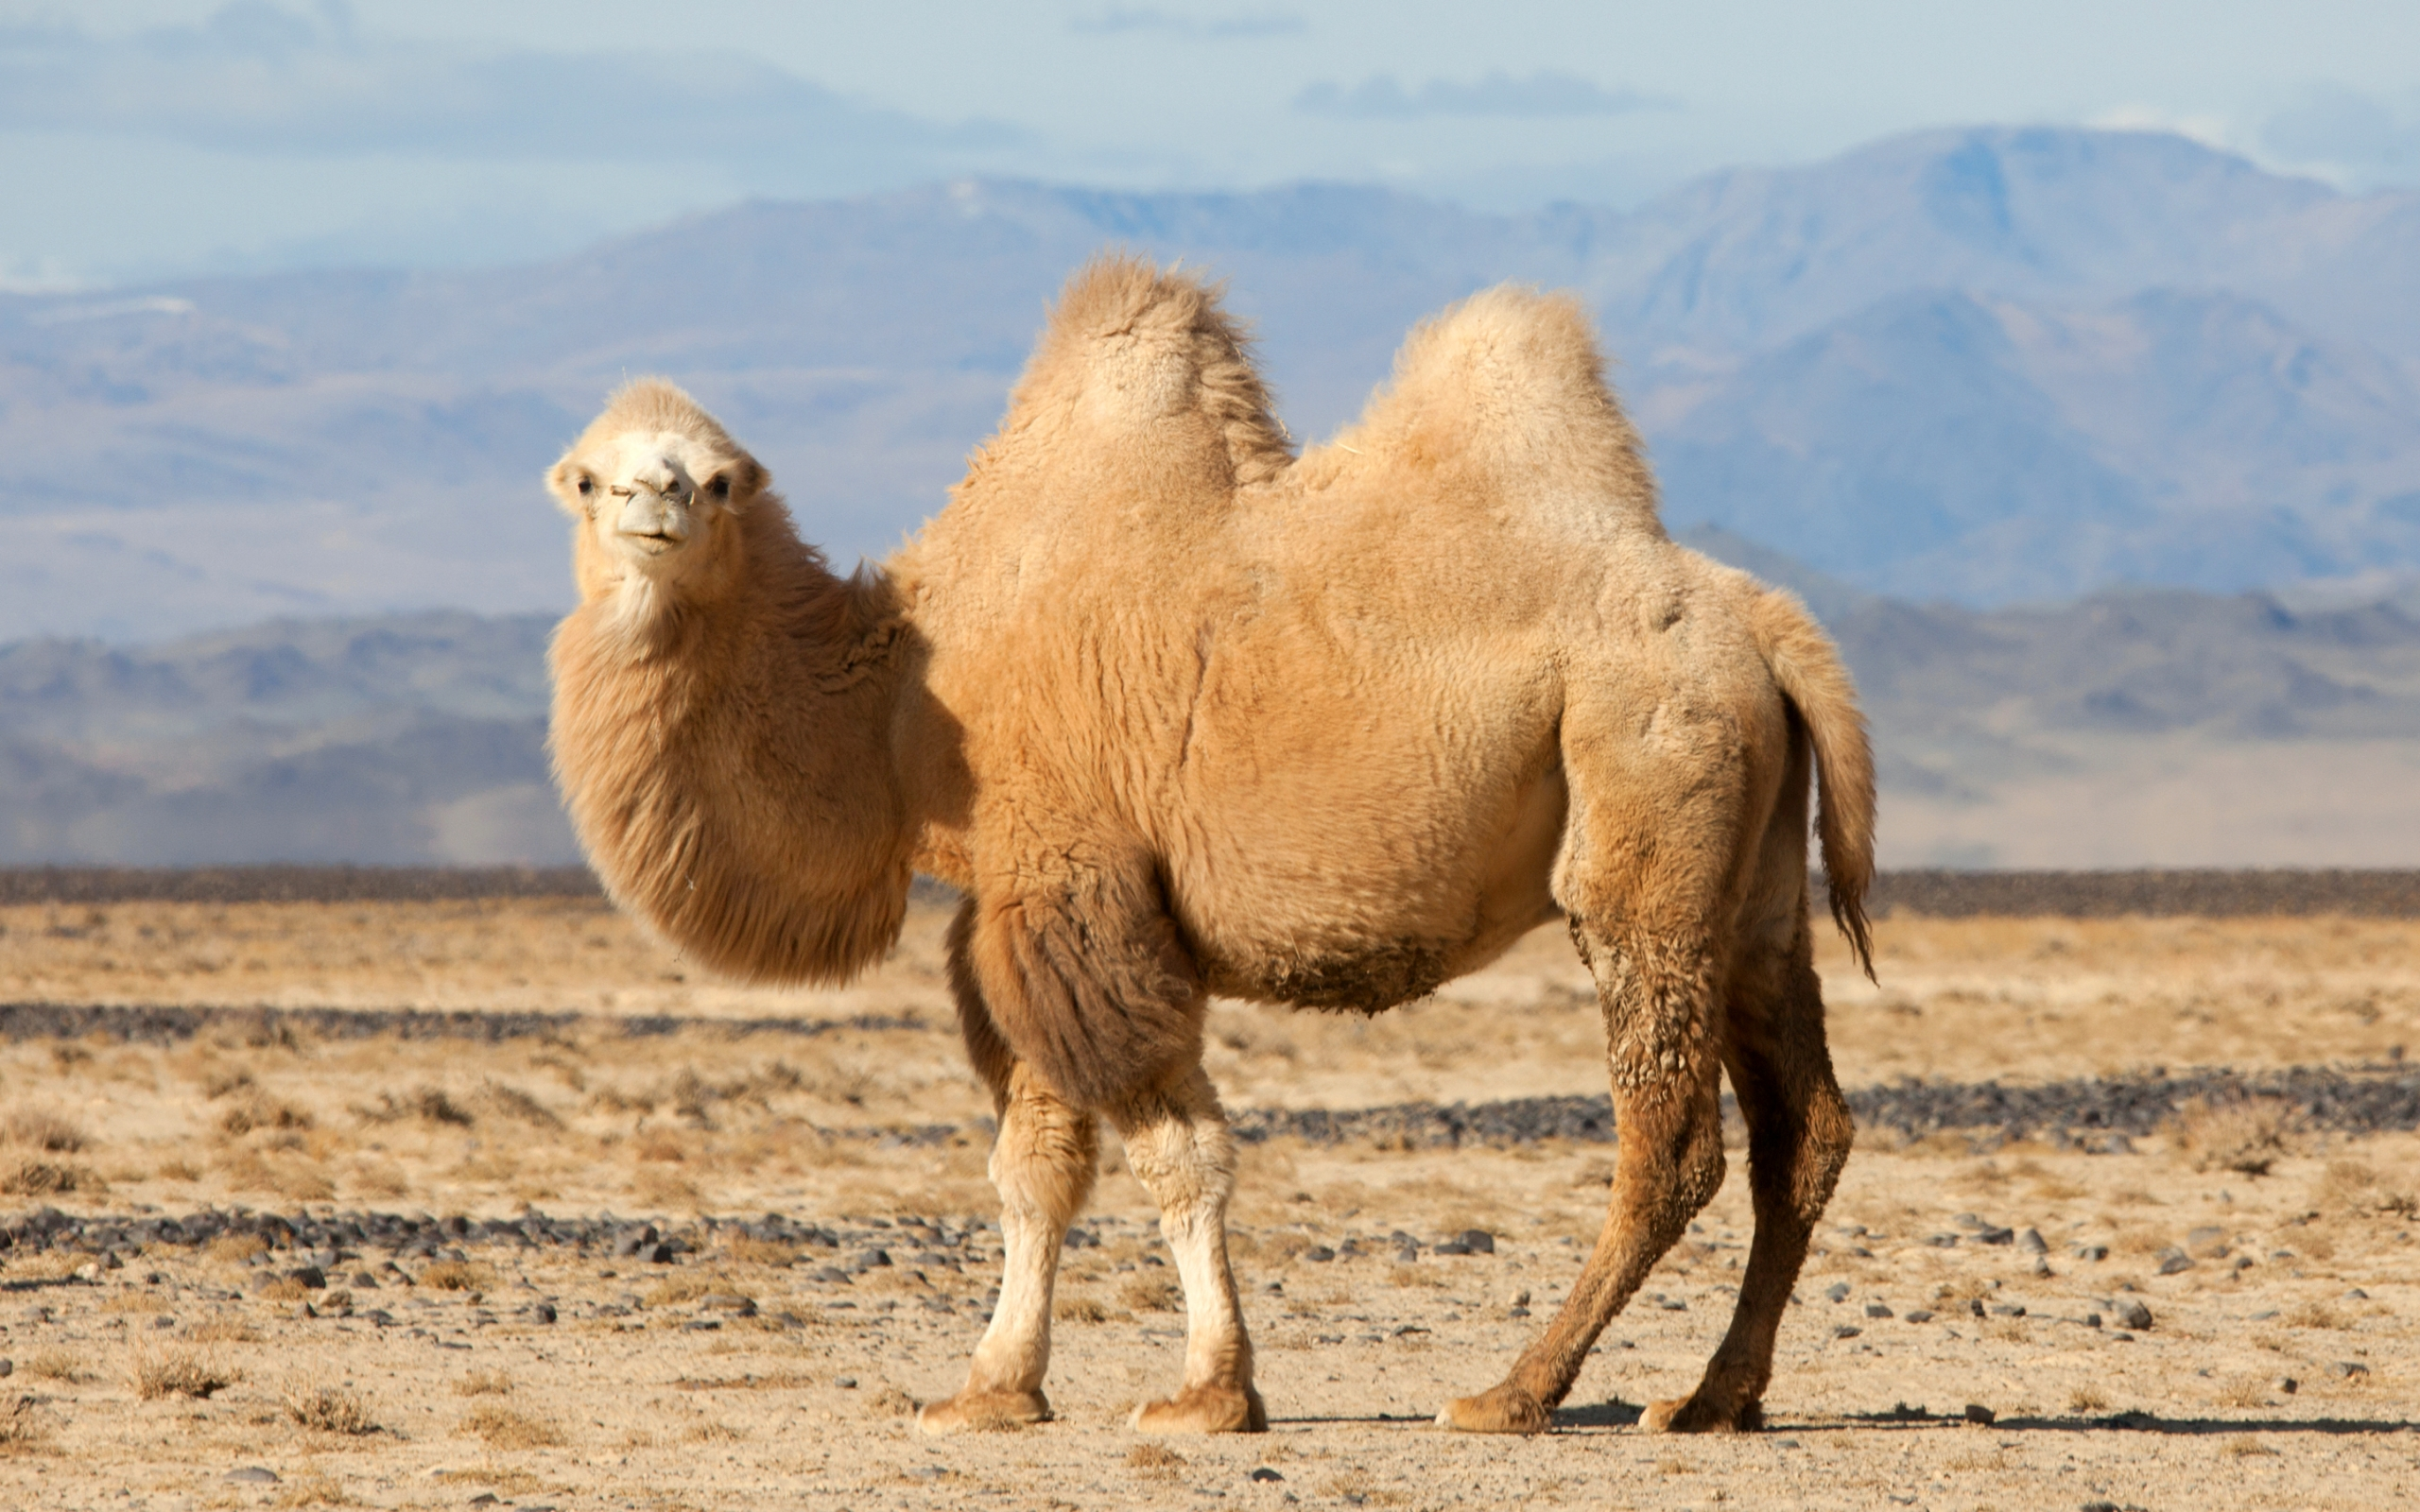 Bactrian Camel in the Wild Nature